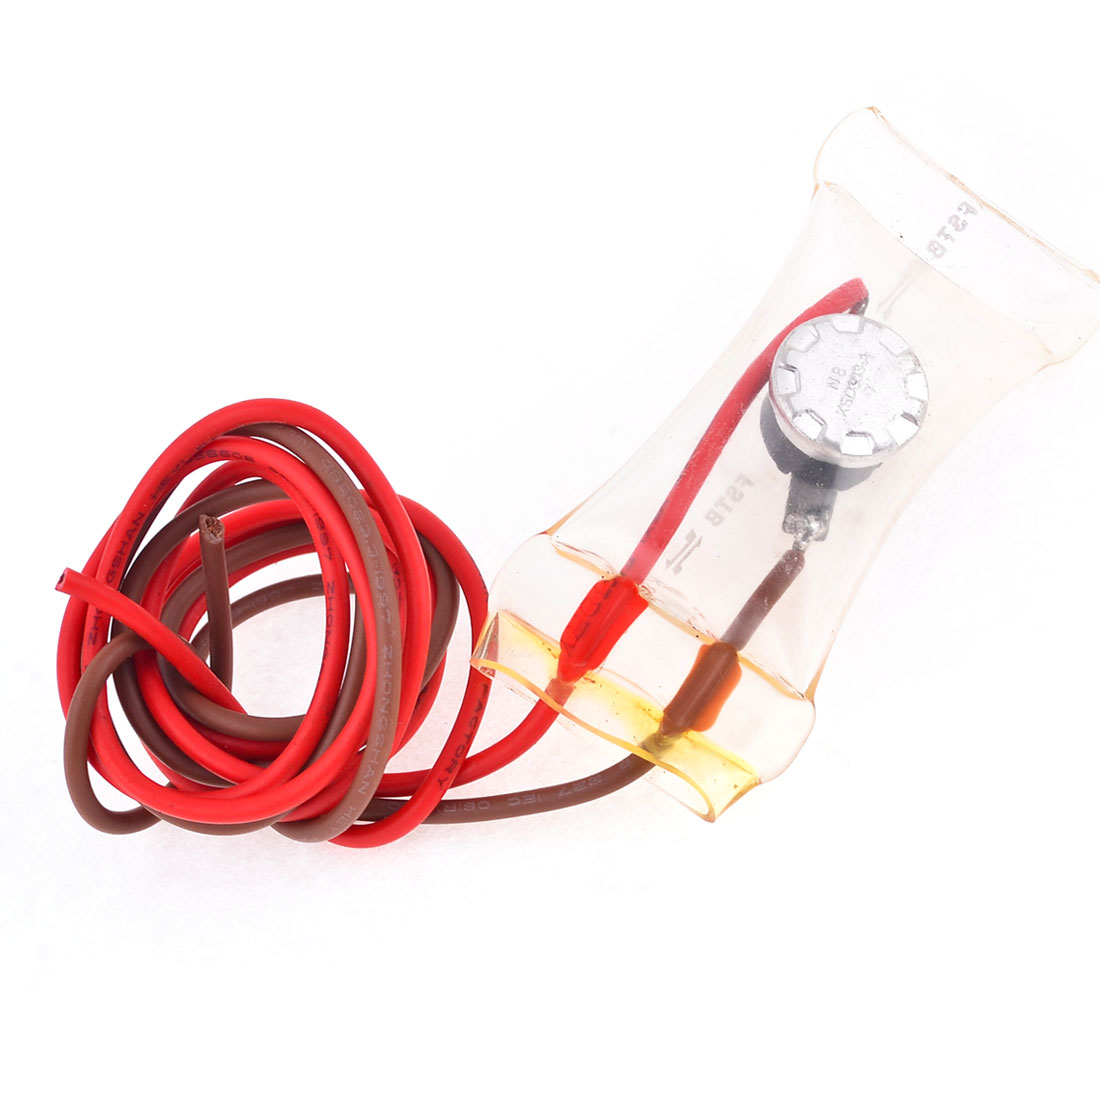 AC 230V 3A 2 Wired Lead -7C Refrigerator Defrost Thermostat Switch